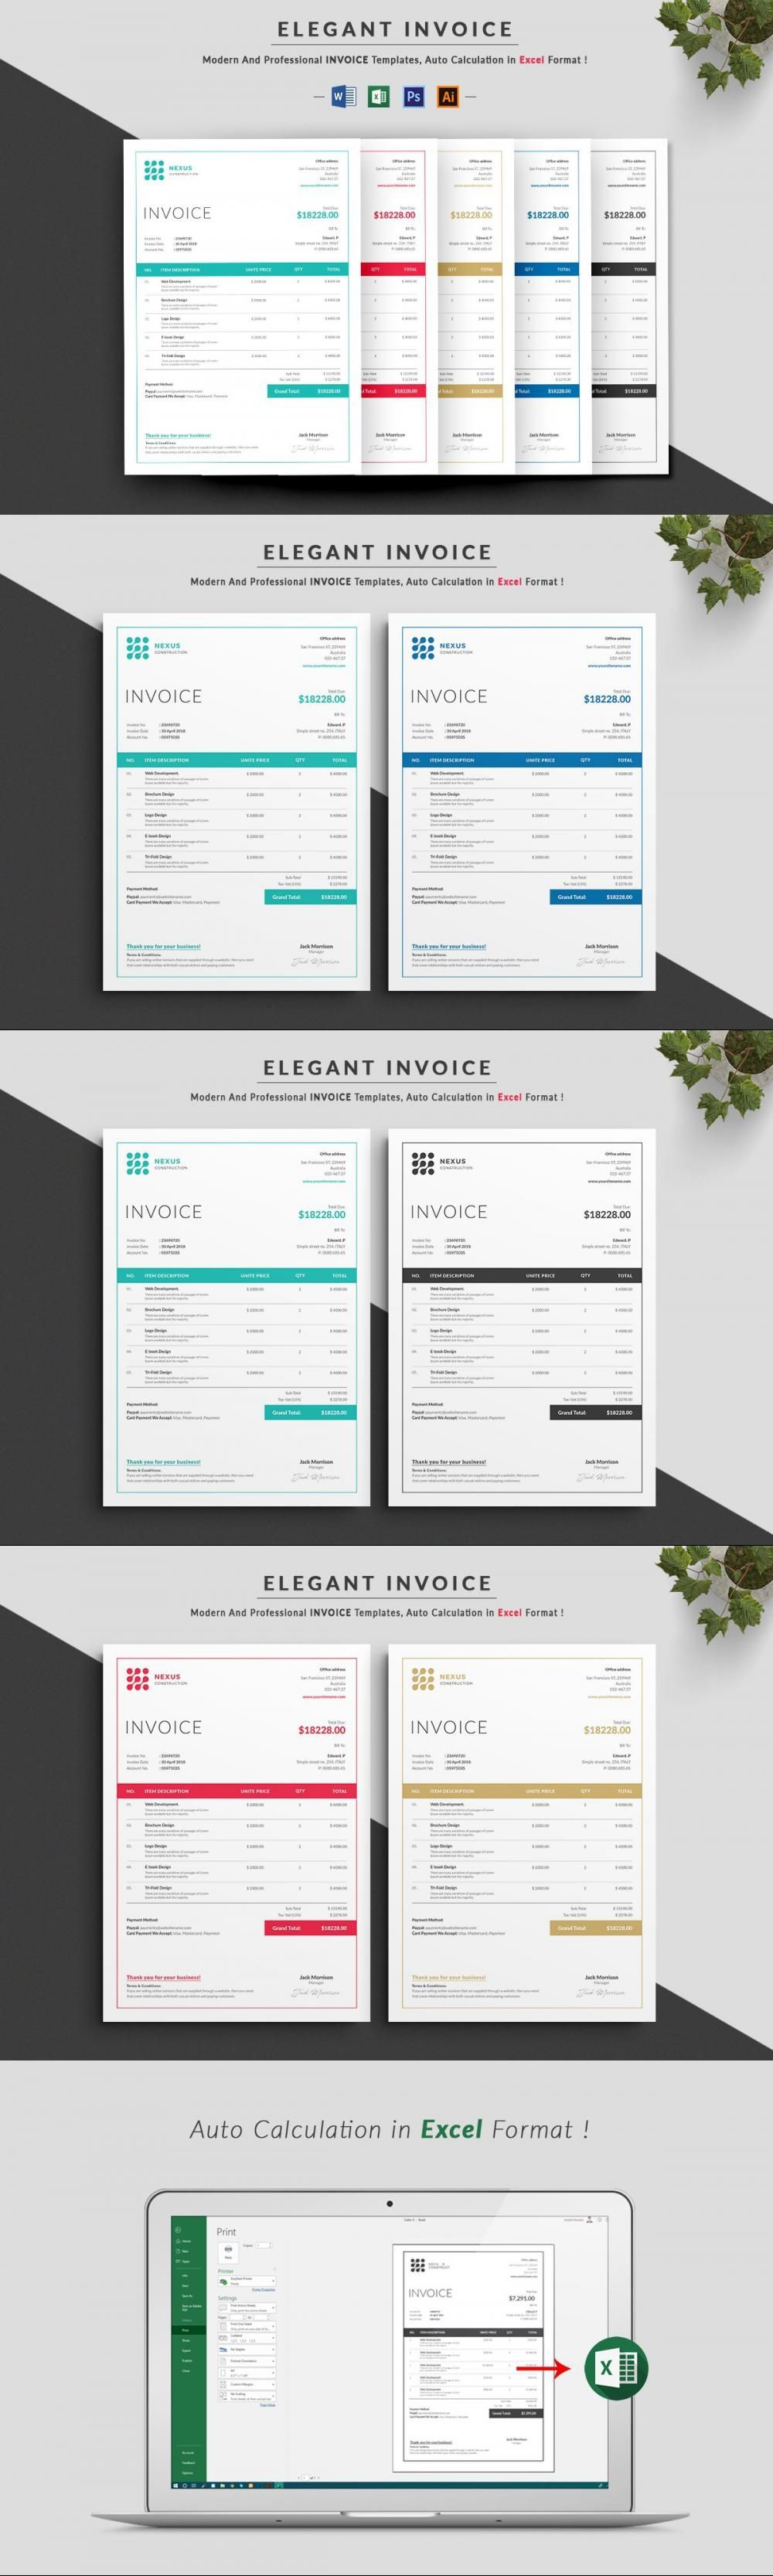 Invoice Stationeries Stationeries Receipt Blue Excel Clean Stationerytemplate Stationerydesi In 2021 Stationery Templates Stationery Design Stationery Printing